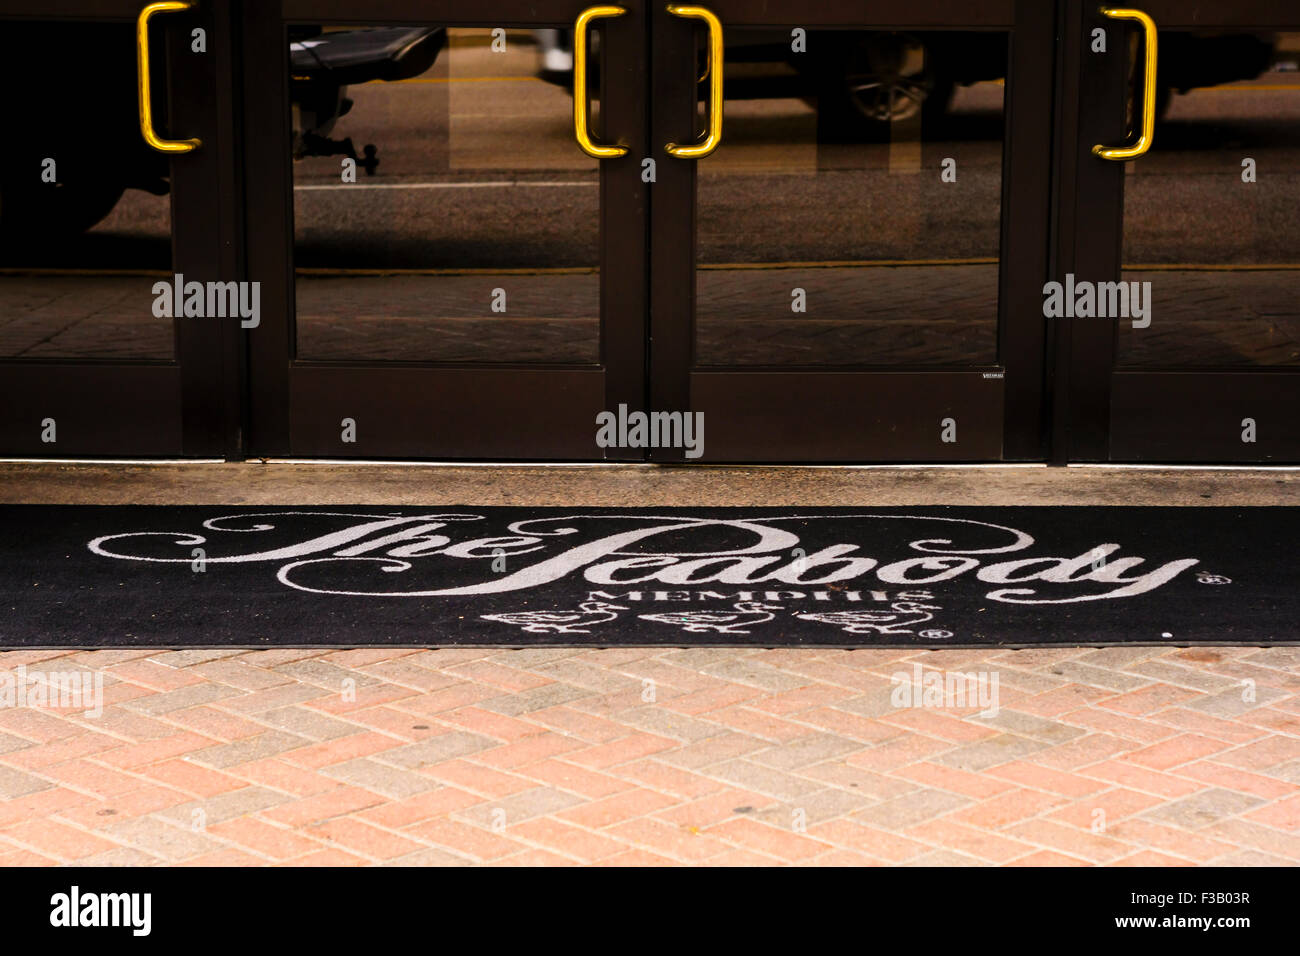 The entrance carpet and doors to the Peabody Hotel in Memphis Tennessee